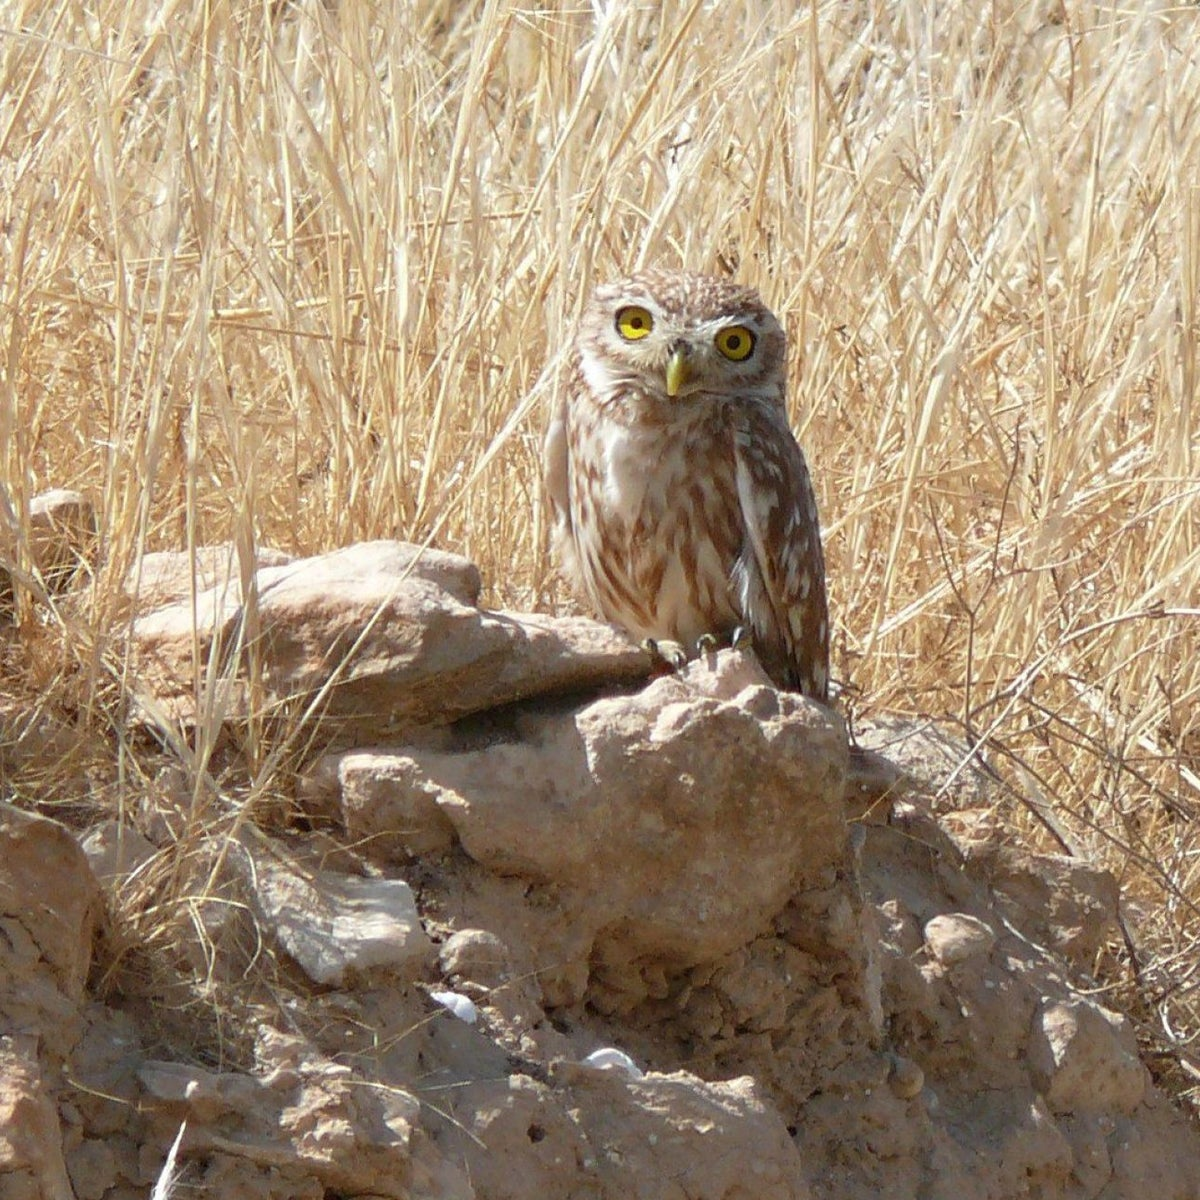 The brown and white little owl with piercing yellow eyes and beak, pictured in his Negev perch